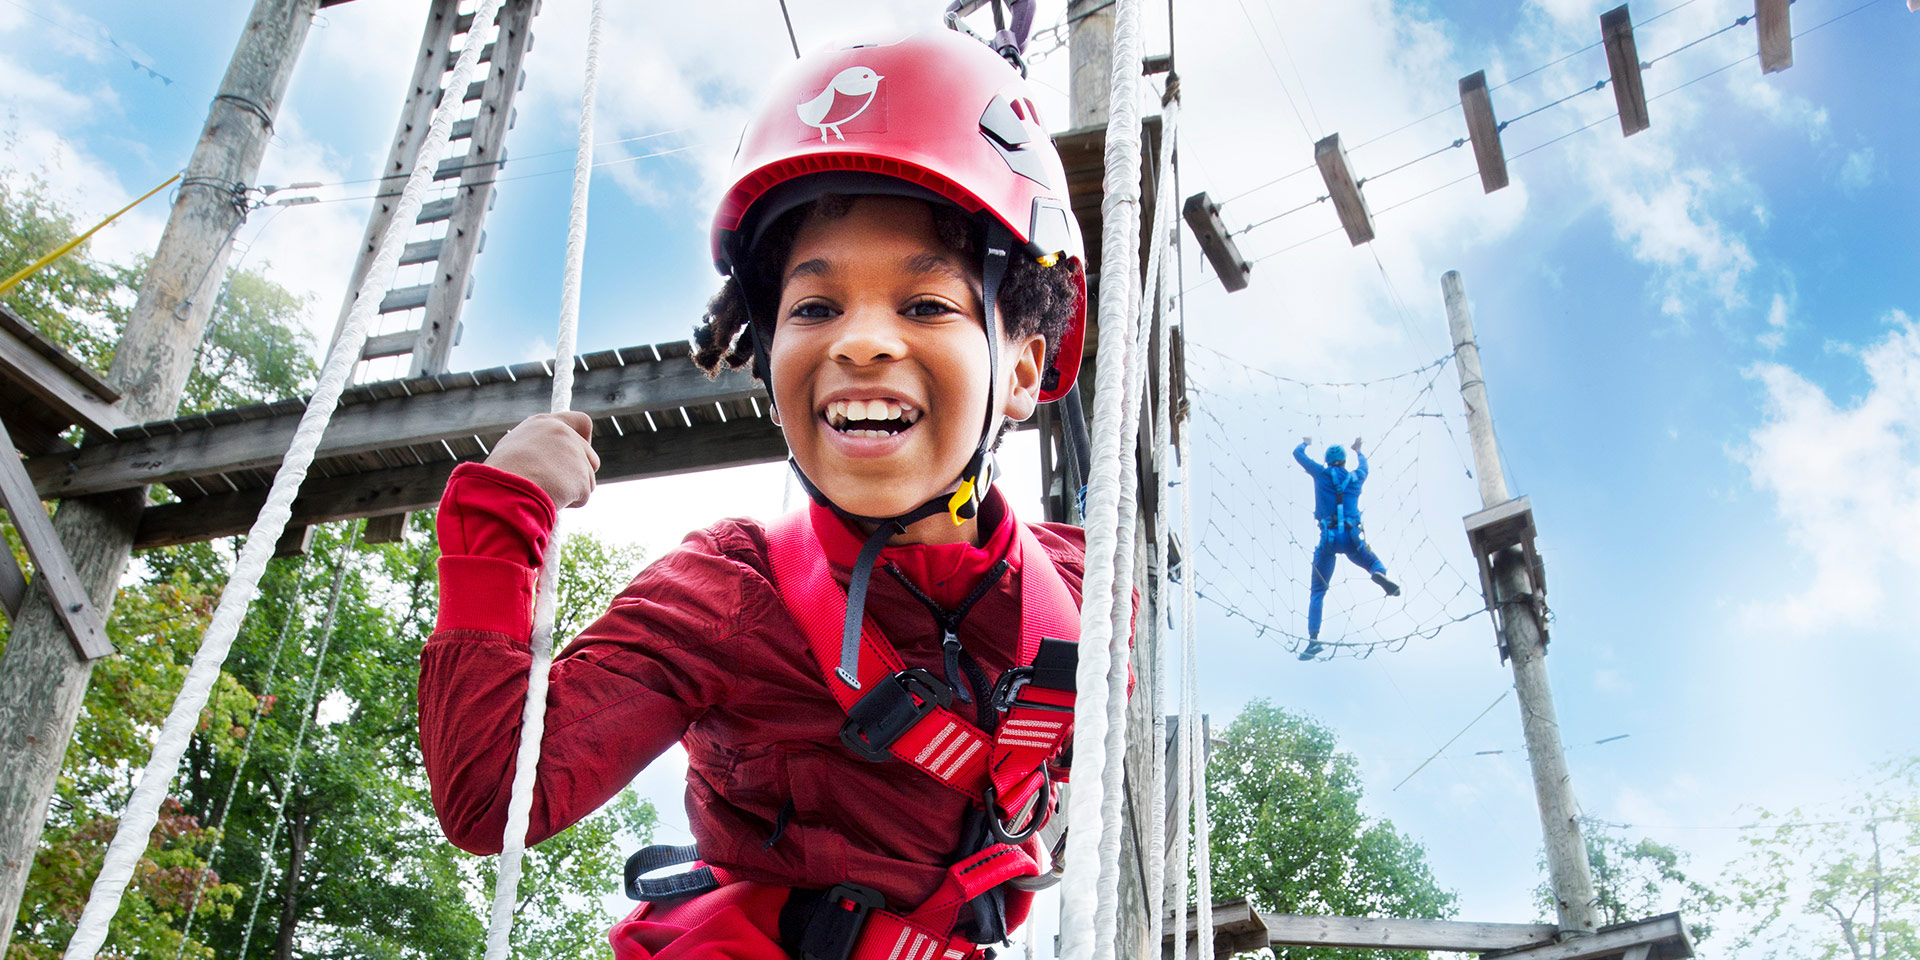 little boy smiling on low ropes course